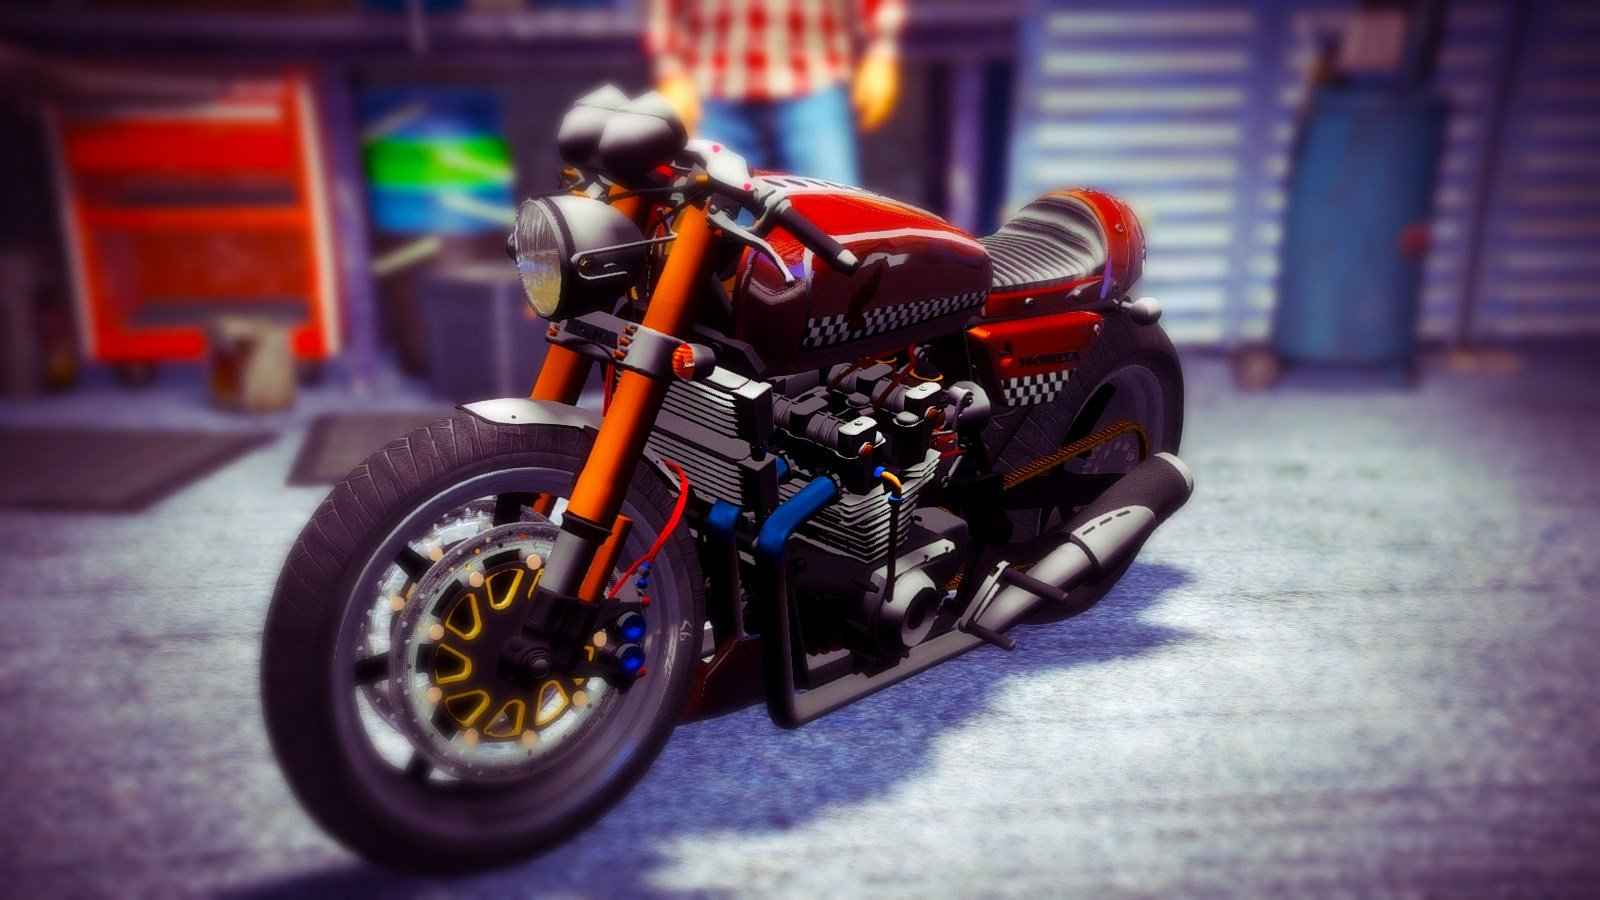 Honda Cb750 Cafe Racer Animated Gta5 Mods Com